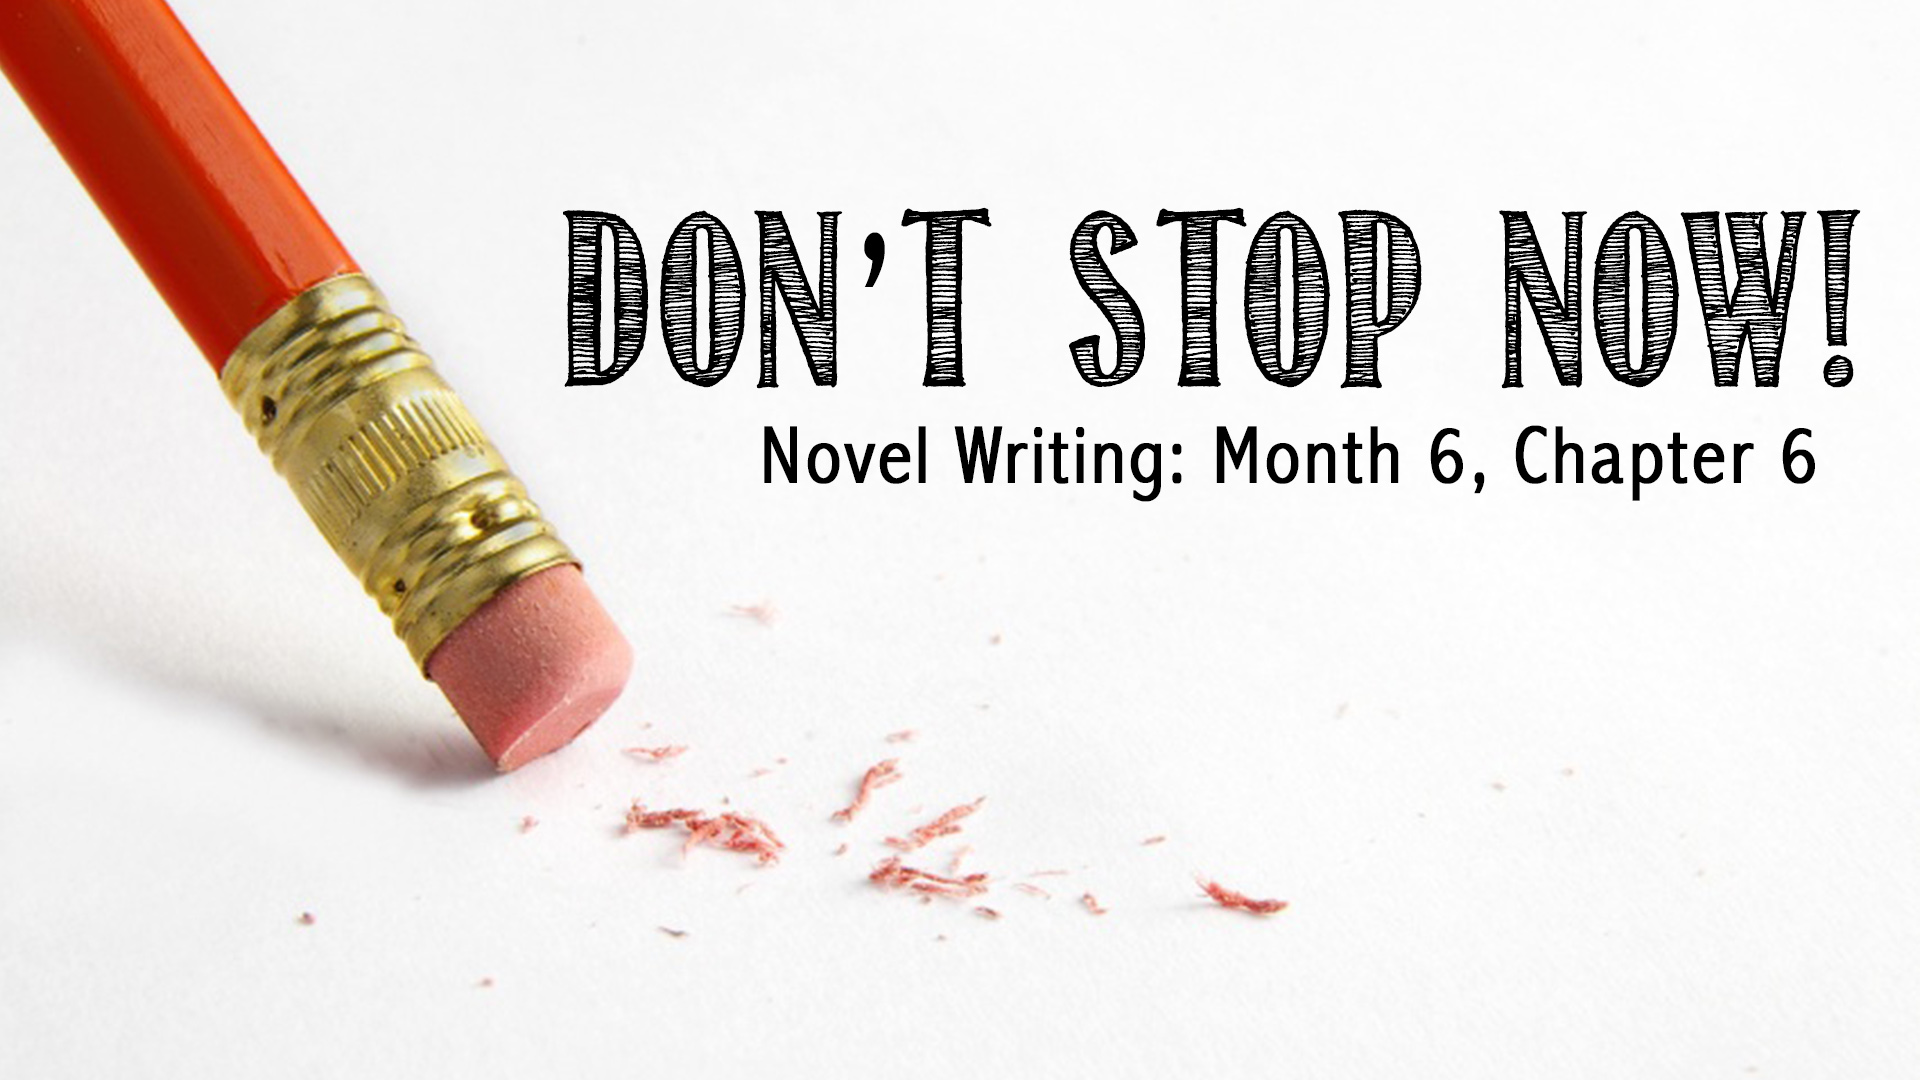 novel writing Turn your idea into a published novel, step by step includes 27 video lessons.